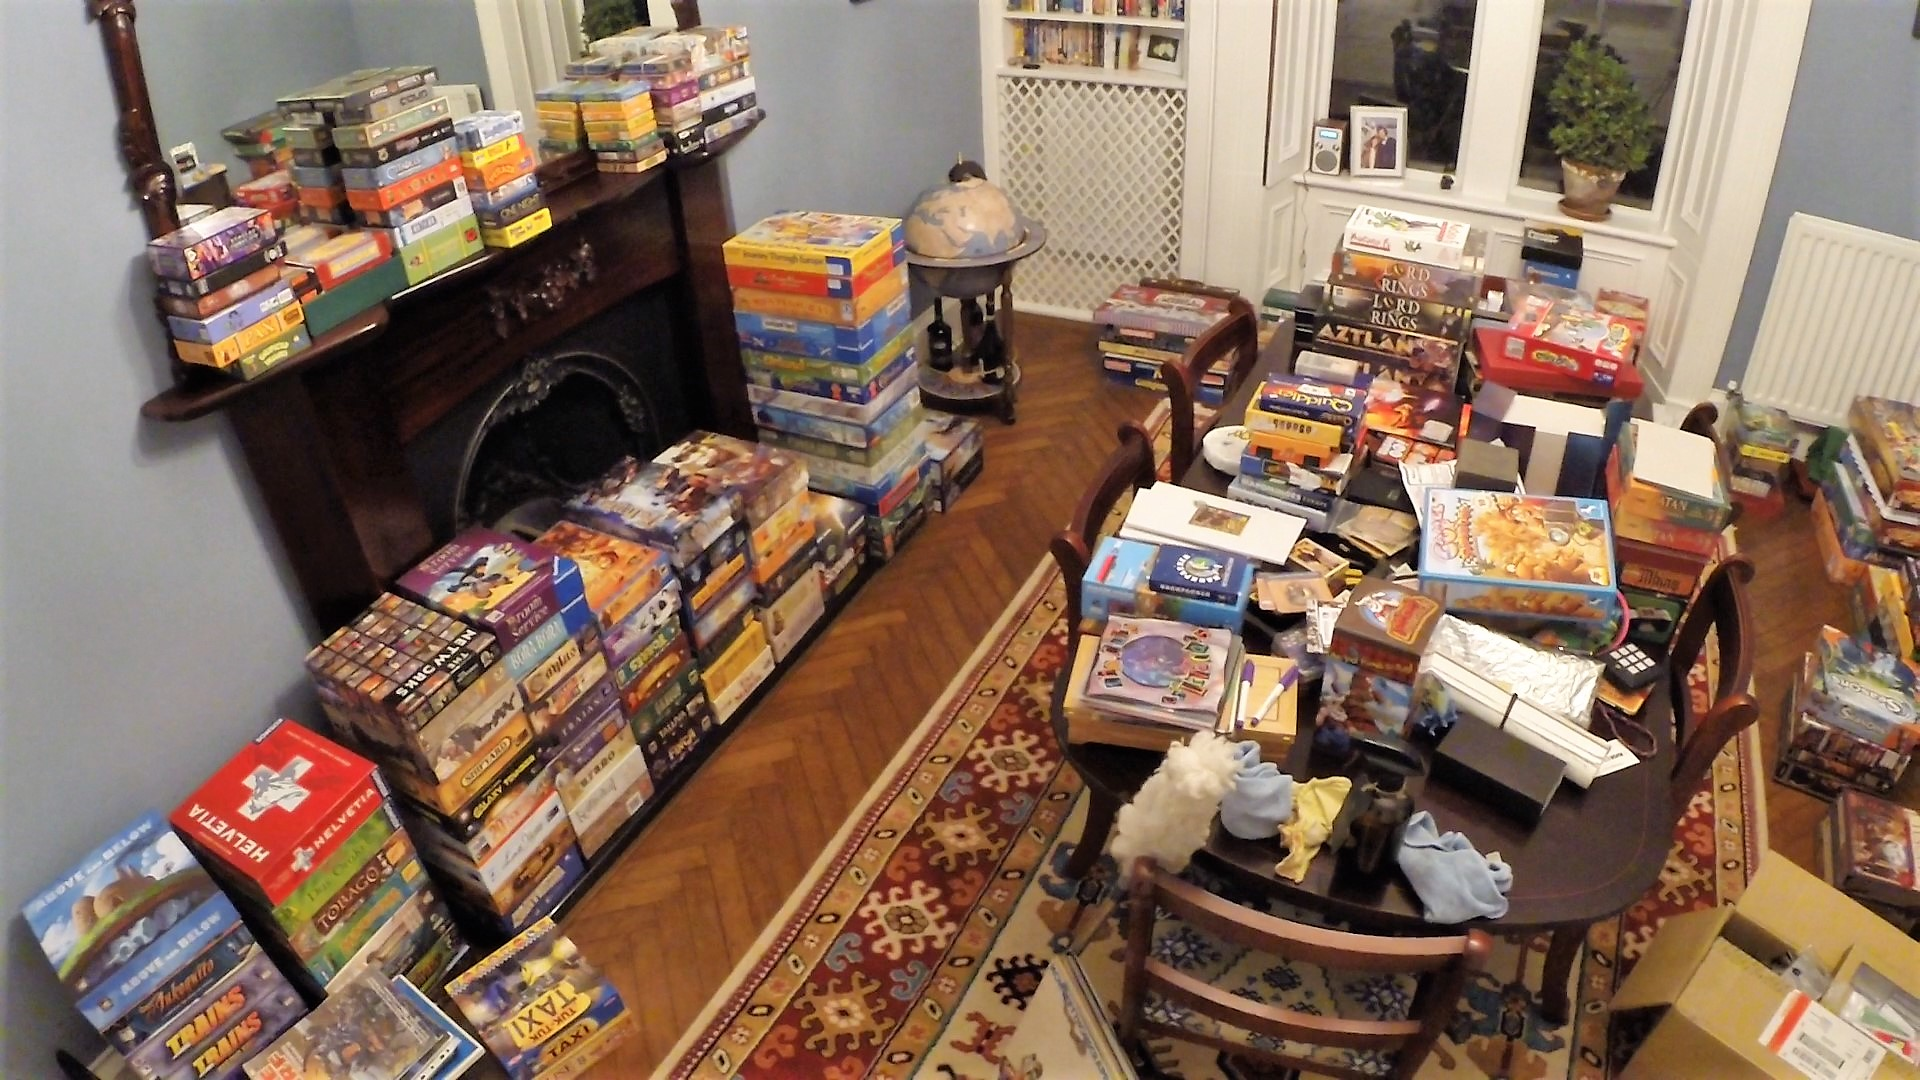 Board games everywhere!